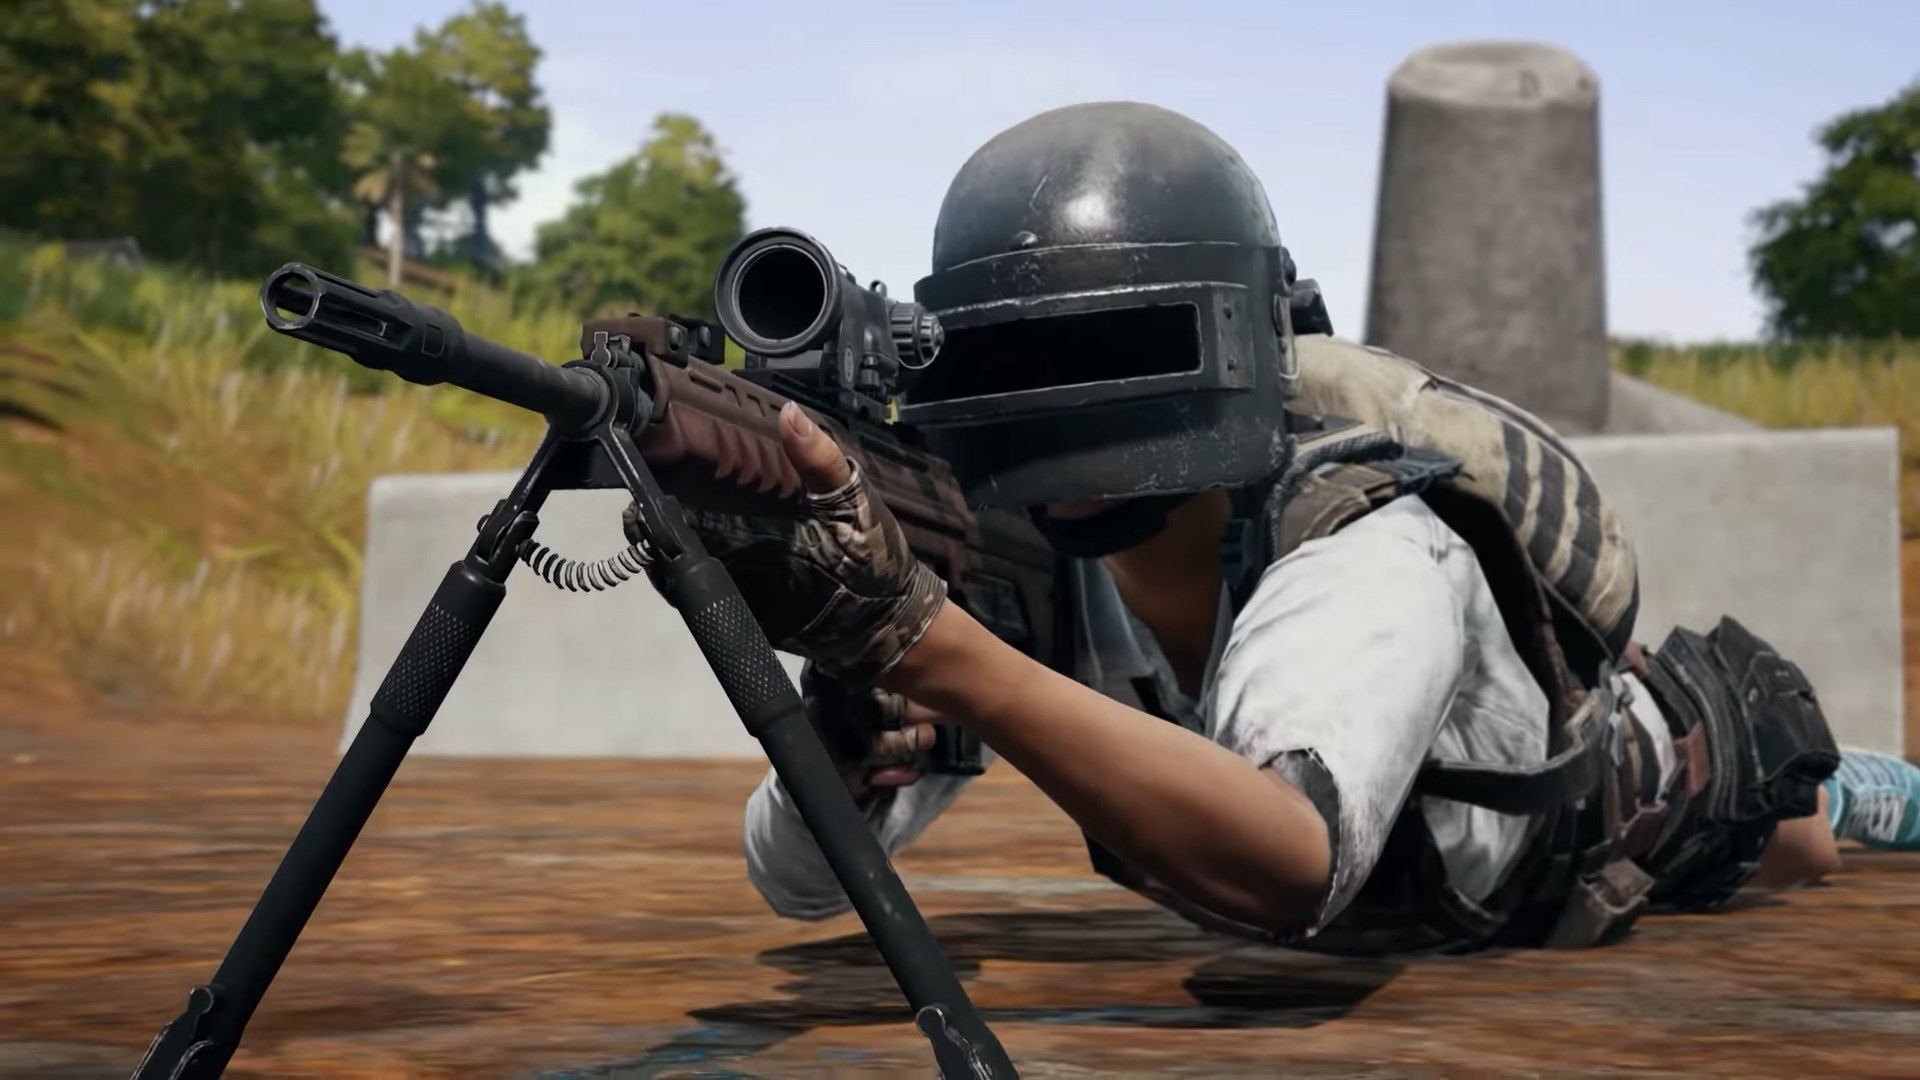 Pubg Scope Wallpaper: PUBG's Sanhok Map Is Getting A New DMR And A New Vehicle